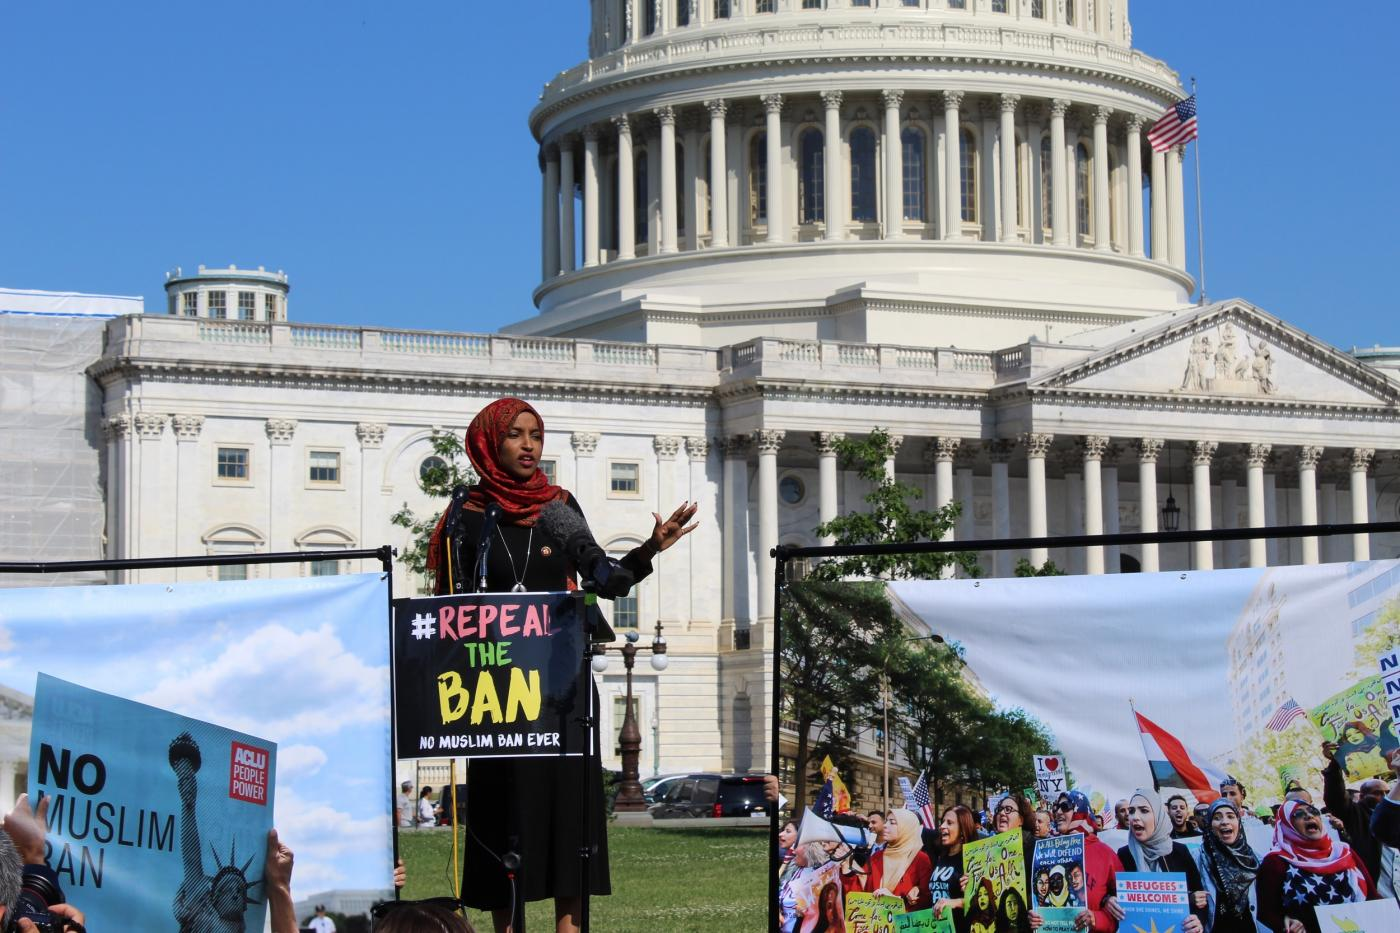 Trump's Muslim ban: US lawmakers vow to repeal 'hateful' order